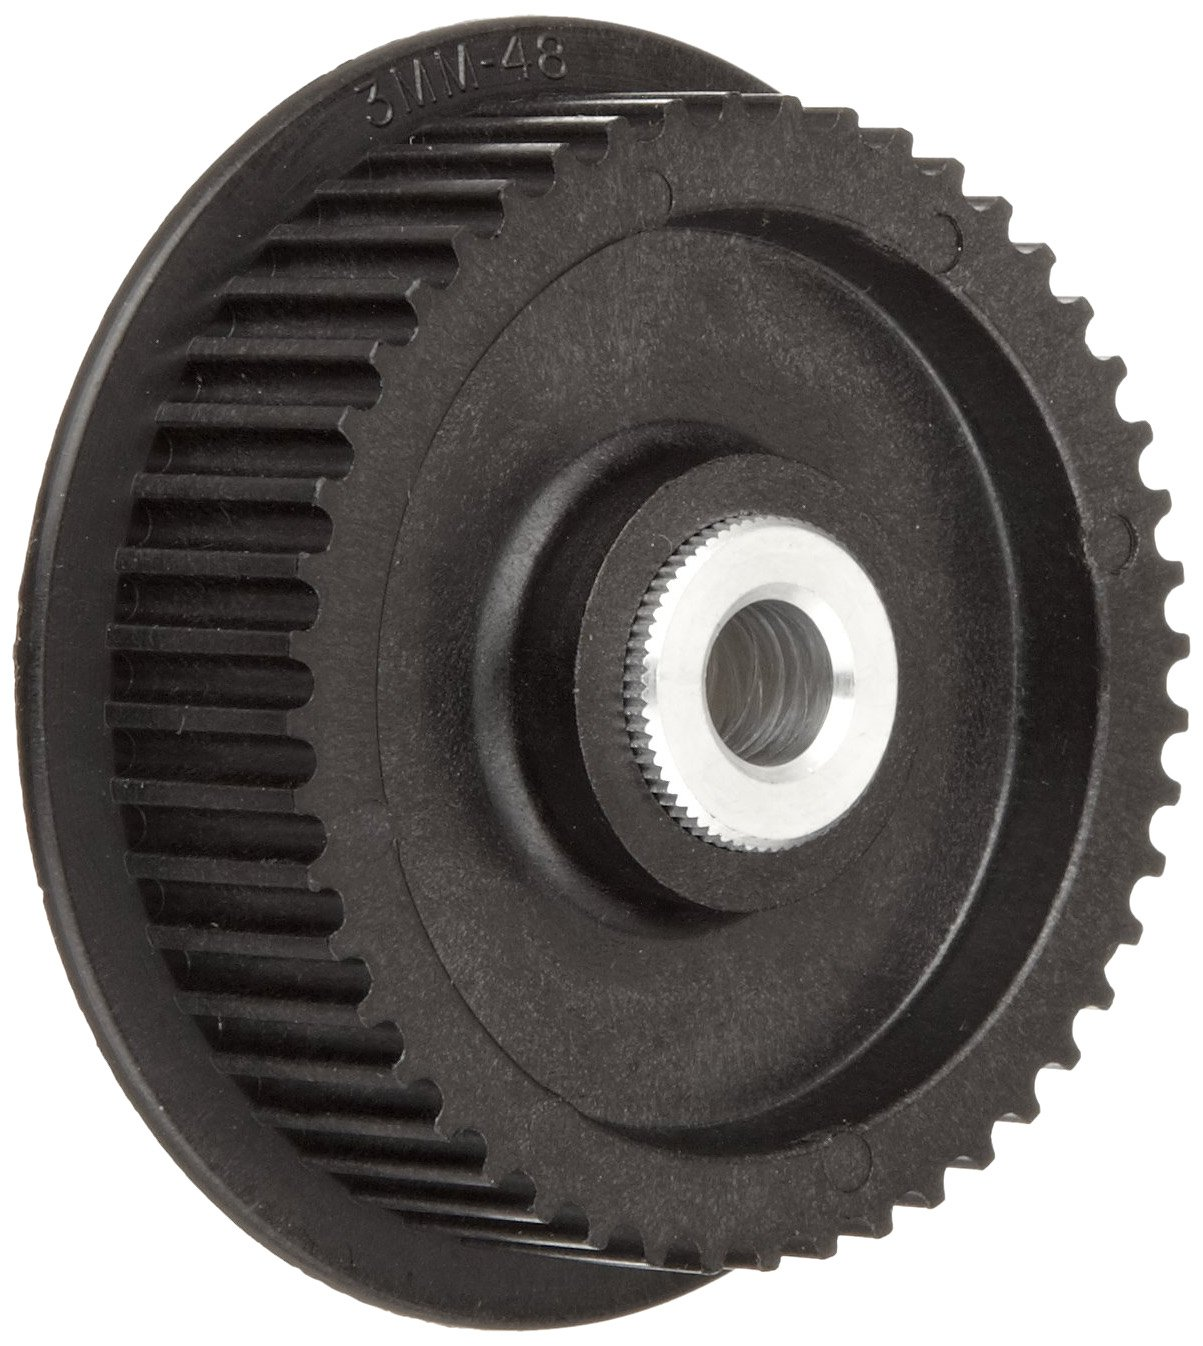 Boston Gear PLB3060SF09-5/16 Timing Pulley, 3 mm Pitch, 60 Grooves, 9mm Wide Belts, 0.313'' Bore Diameter, 2.226'' Outside Diameter, 0.813'' Overall Length, Lexan with Aluminum Insert, Single Flange